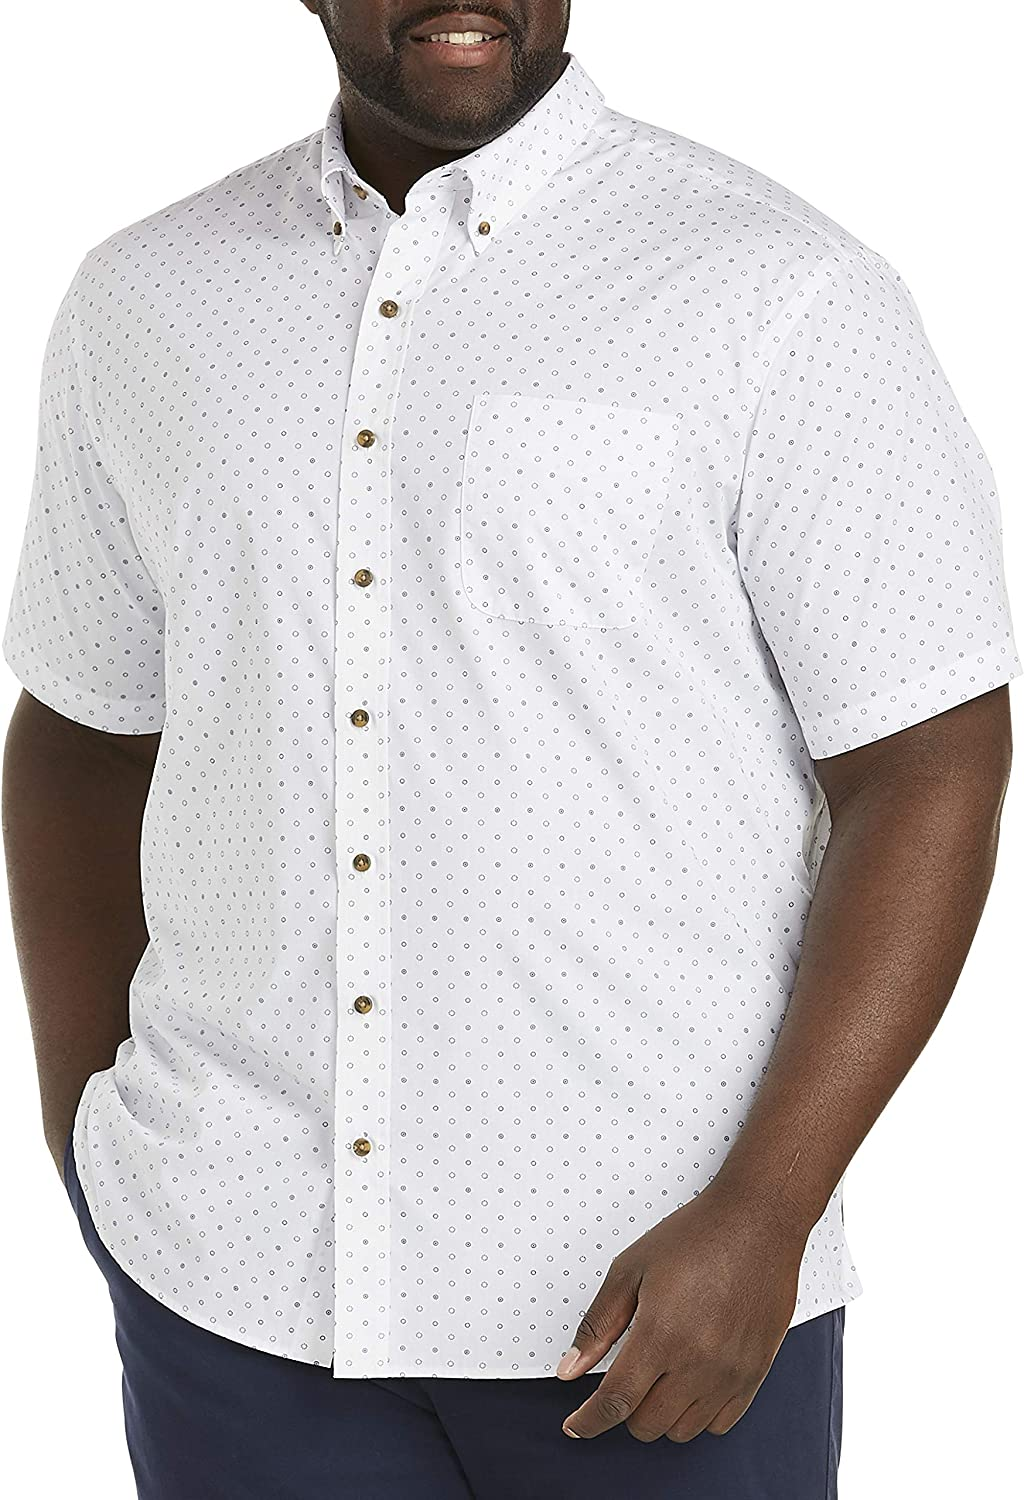 Harbor Bay by DXL Big and Tall Easy-Care Geo Dot Stripe Sport Shirt, White